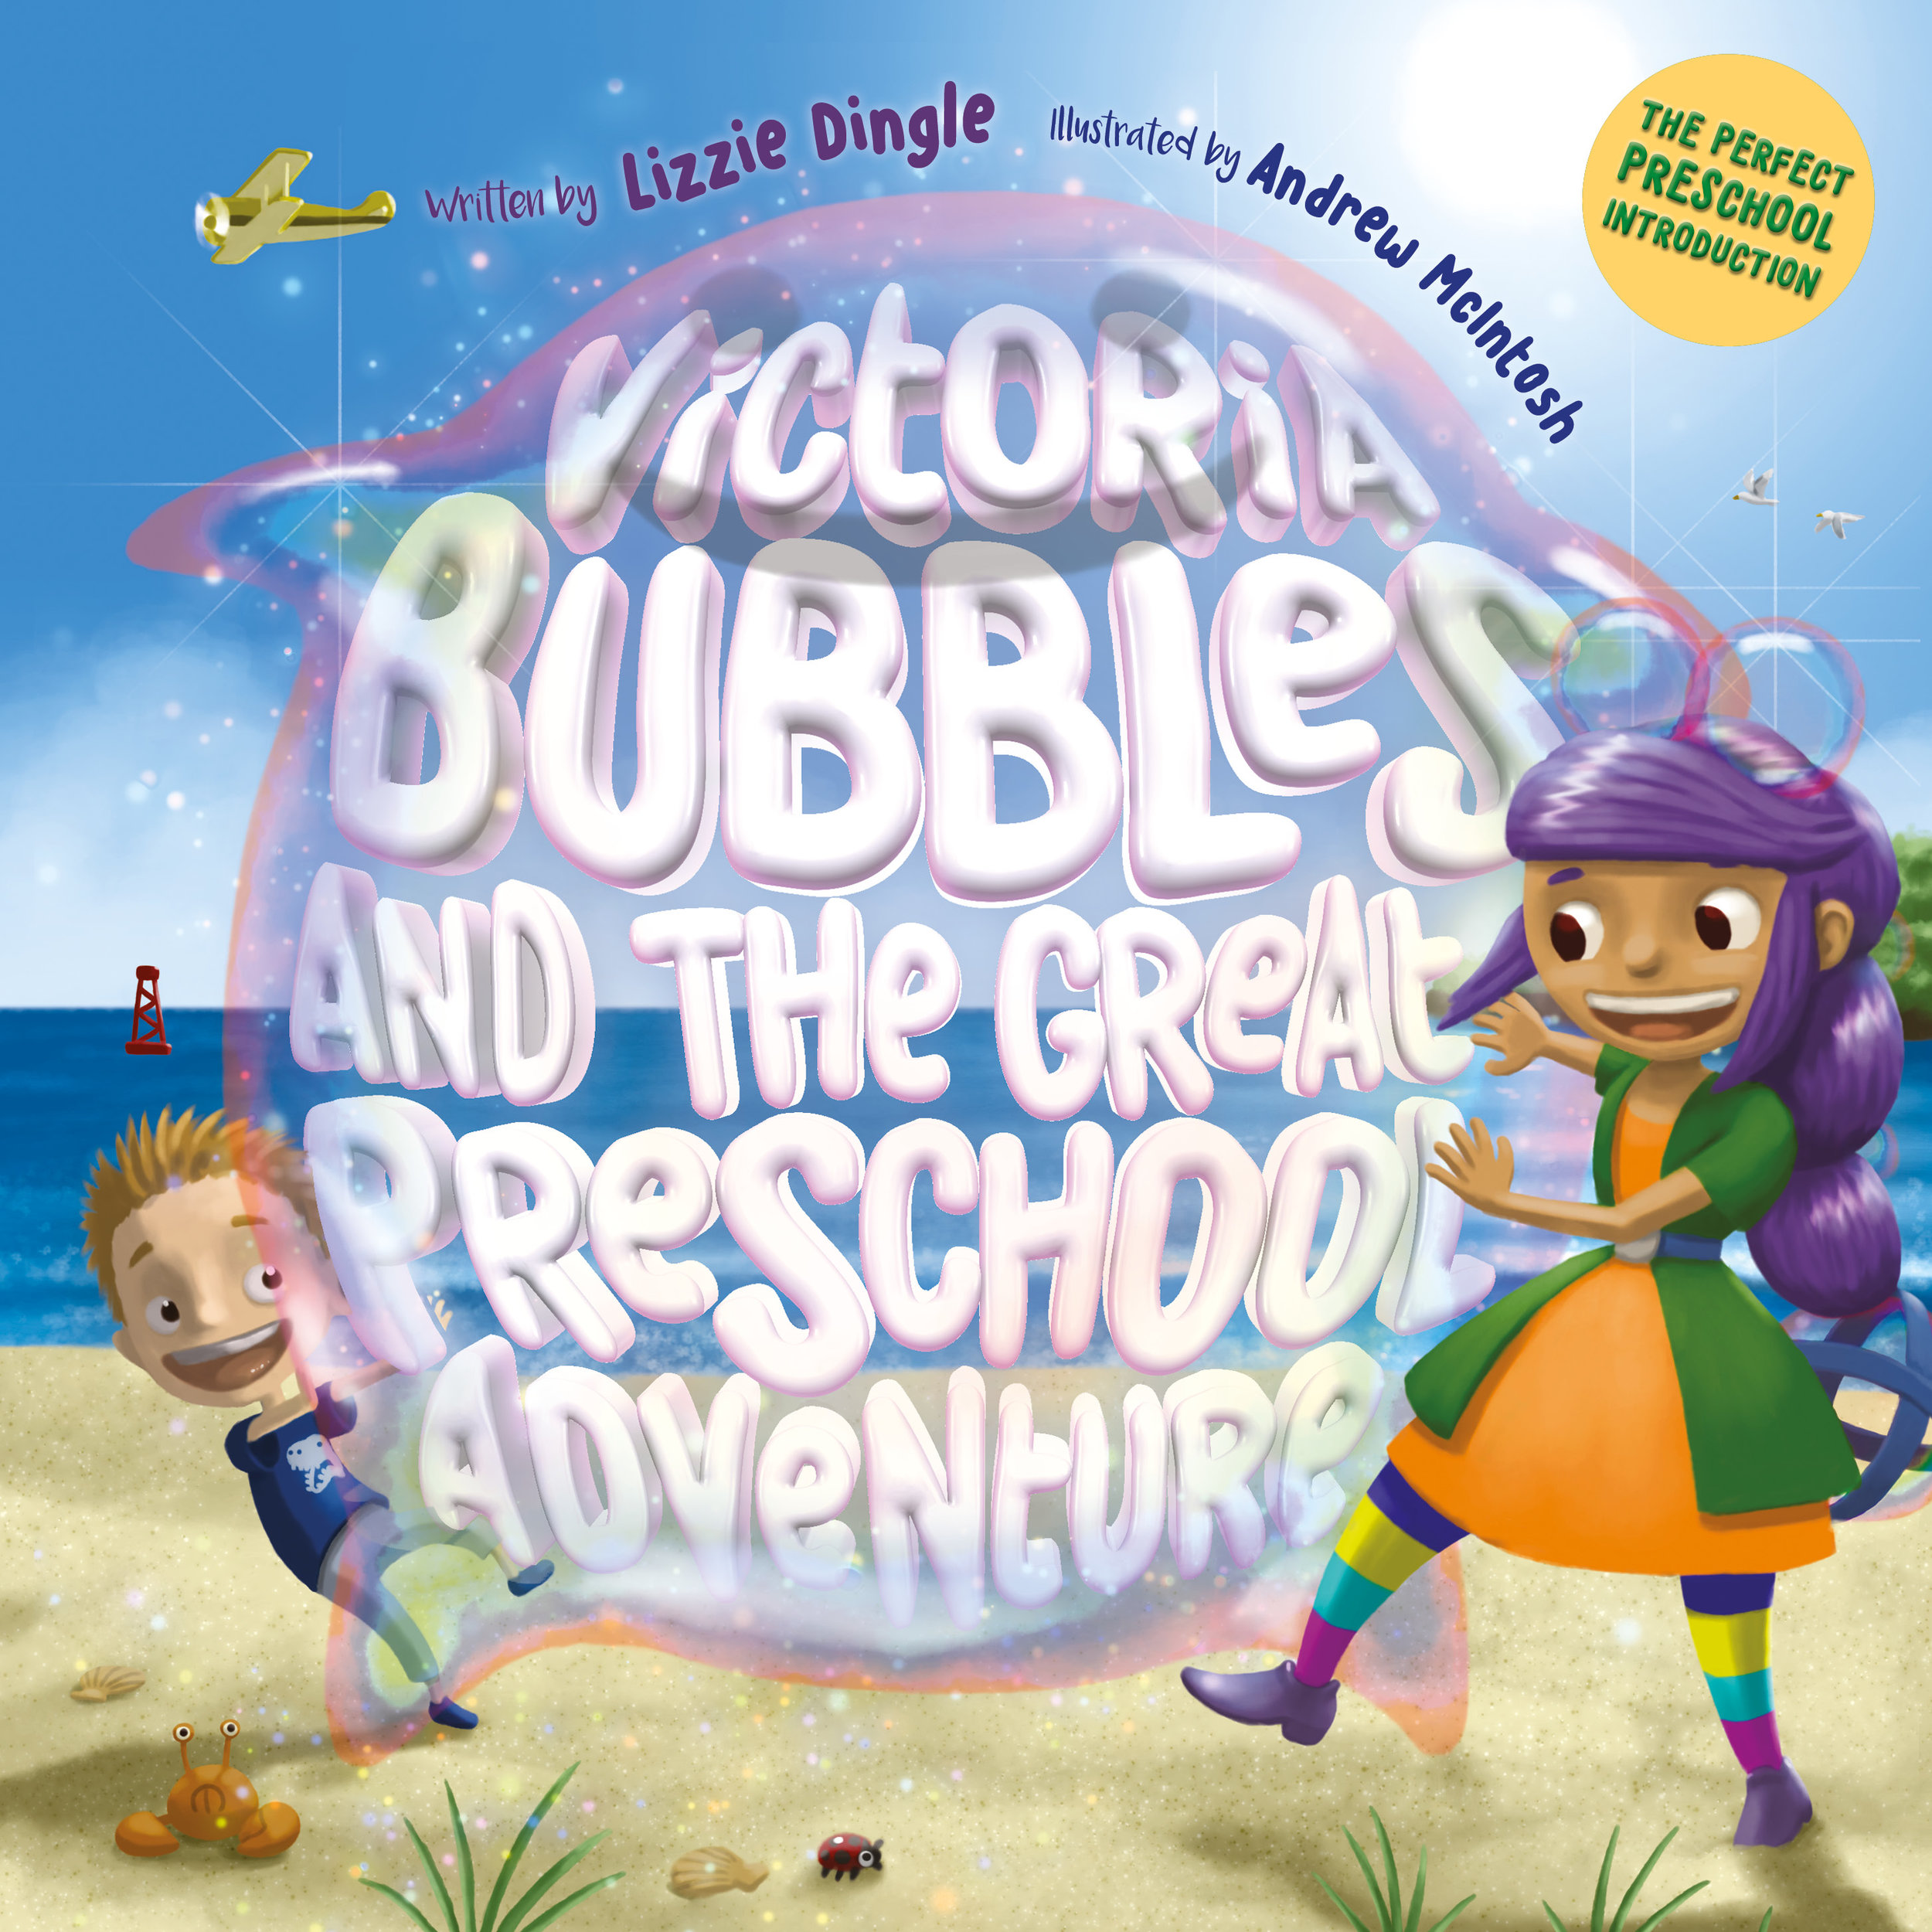 Enquiries - For general enquiries, wholesale orders, book signings and events please contact me directly.Email: lizzie@preschooladventures.com.auMobile: 0448 040 069